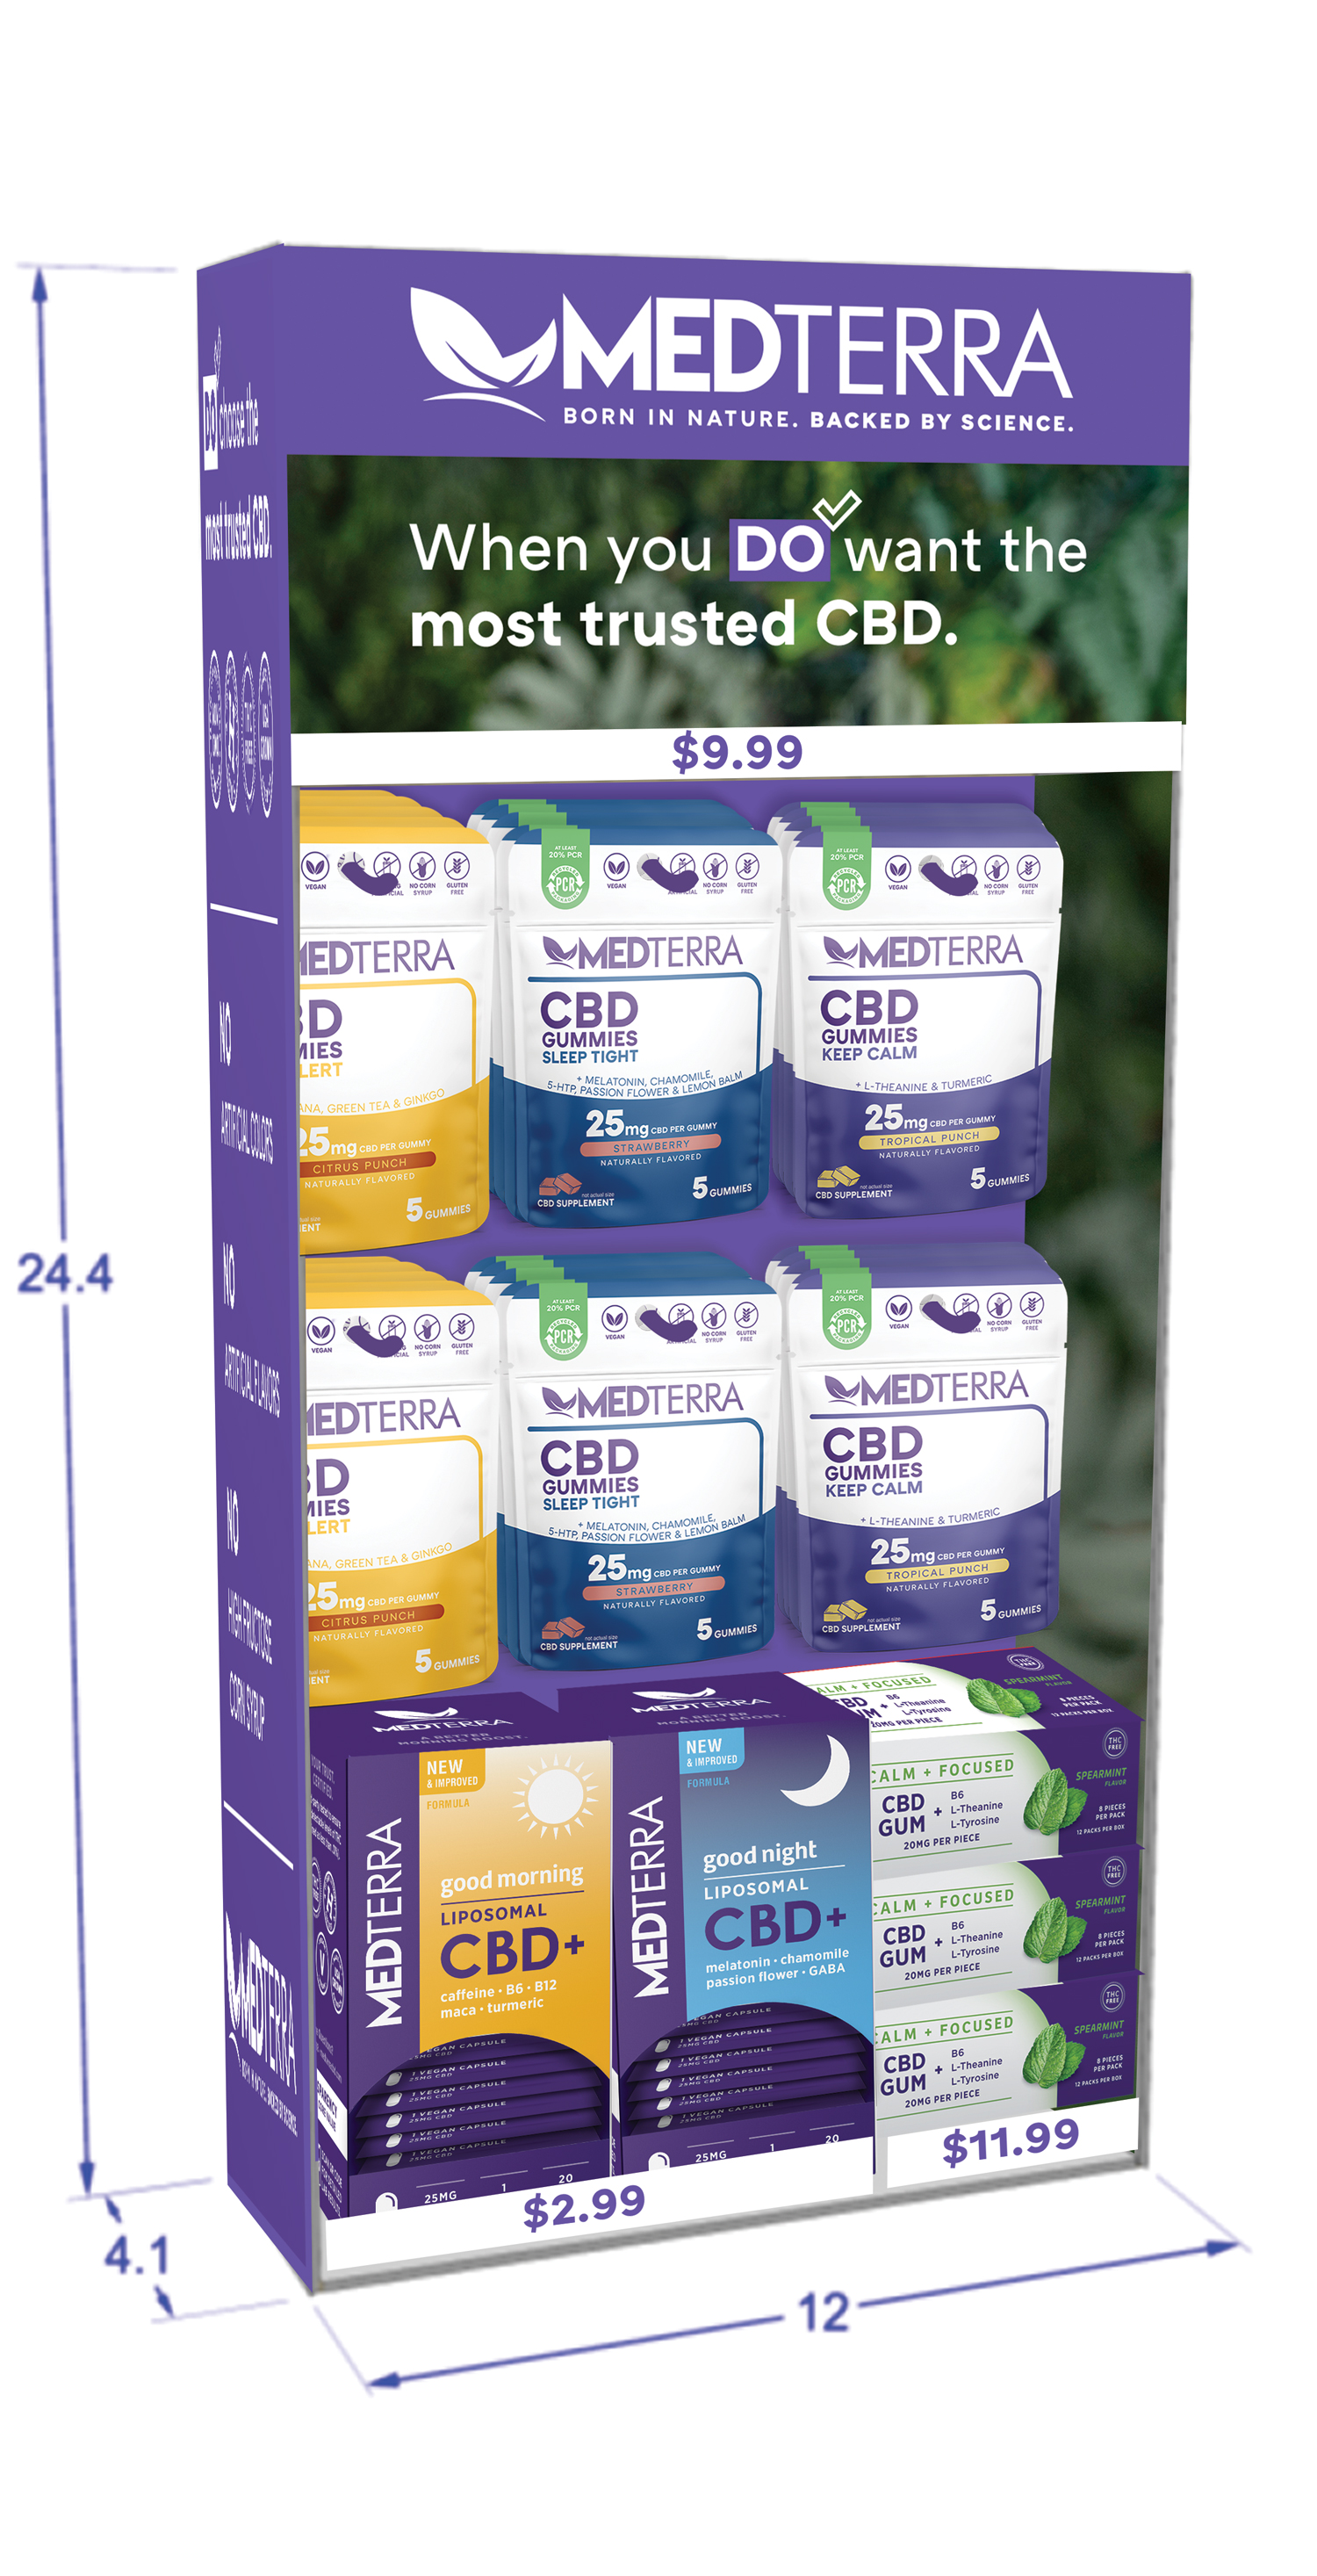 Medterra CBD is now offered Nationwide Through Mr. Checkout's Direct Store Delivery Distributors.